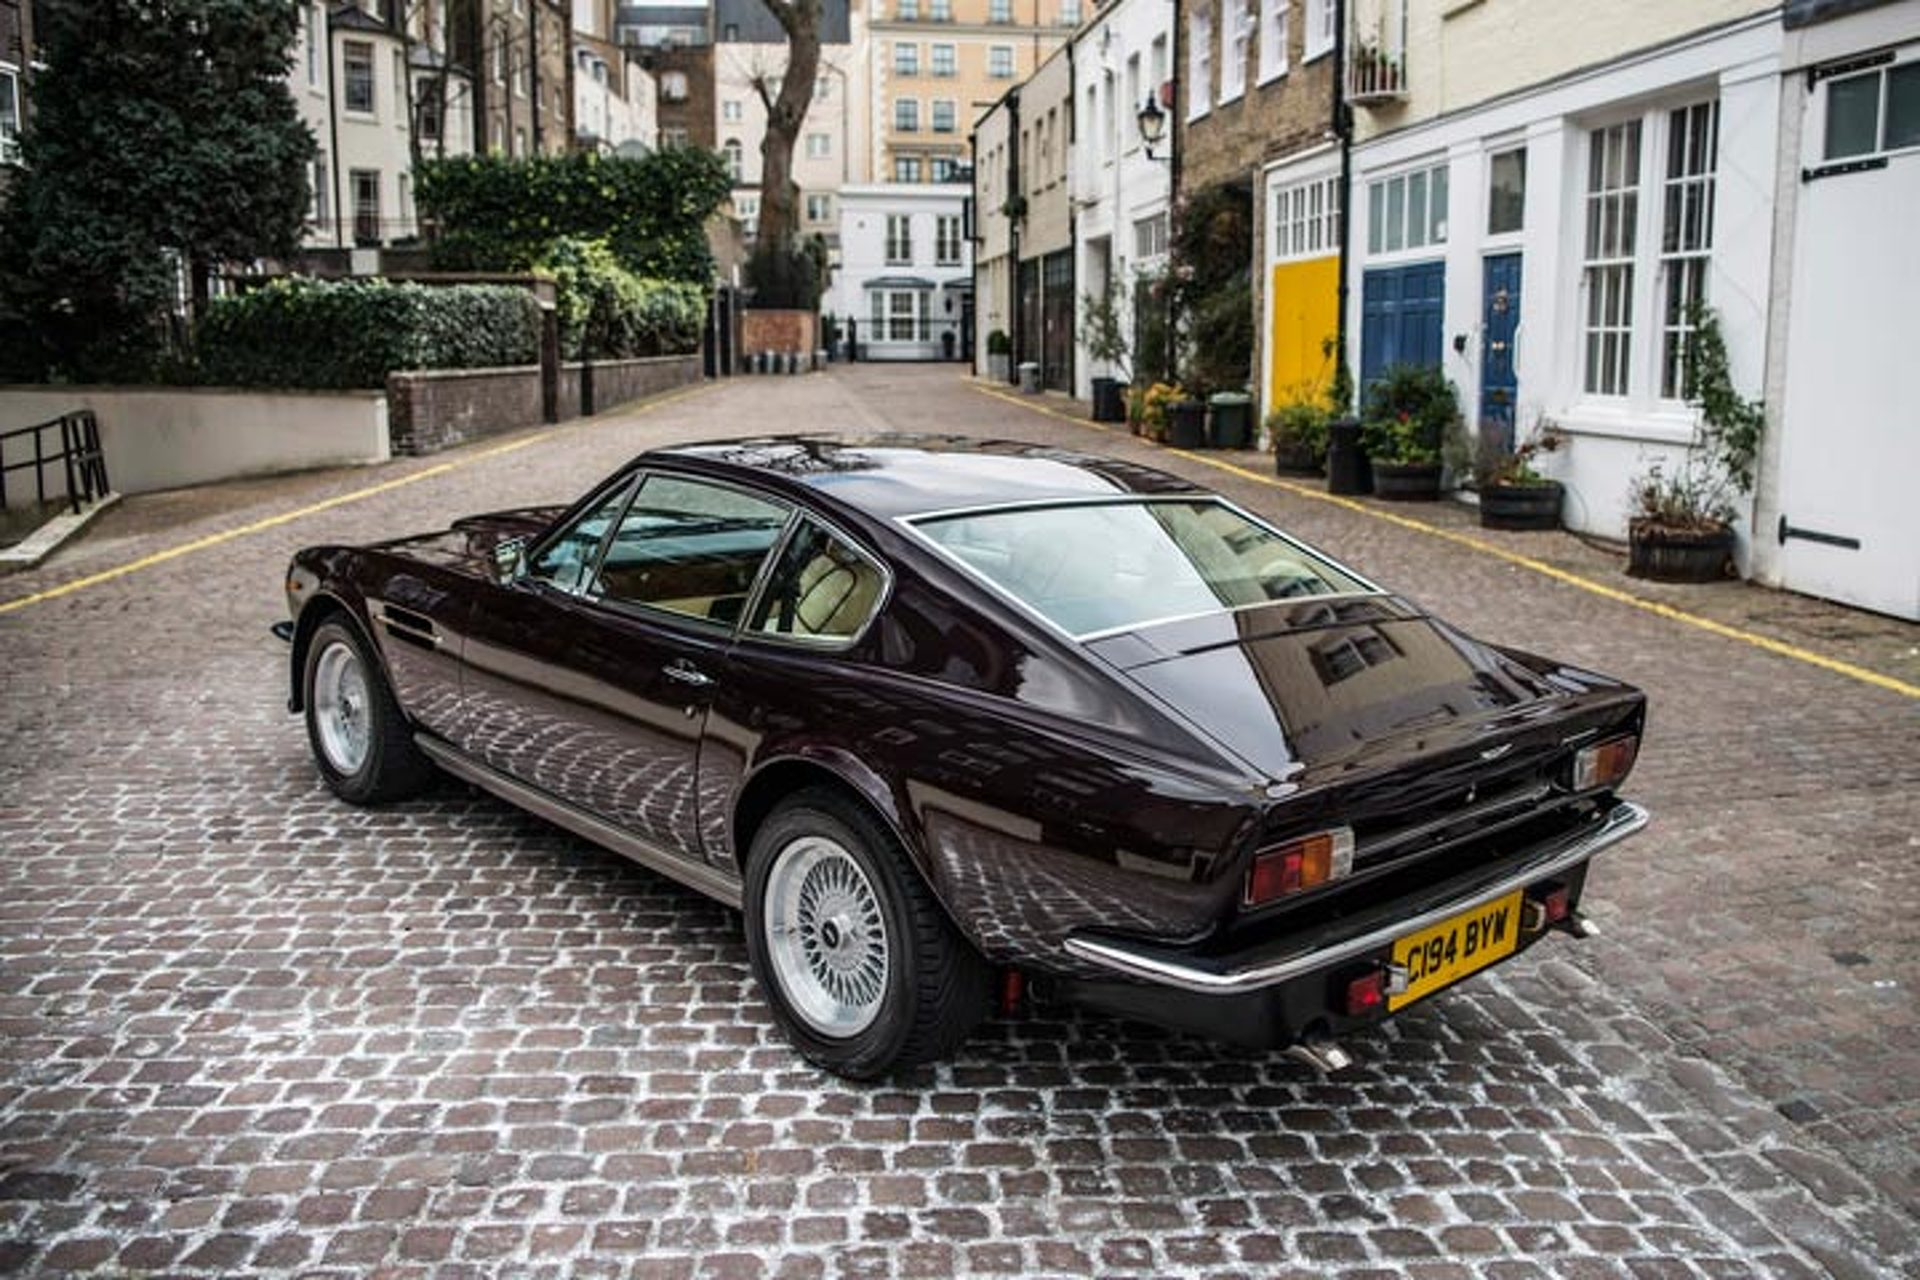 A Rare Sir Elton John Aston Martin Is Up For Sale - Aston martin v8 for sale